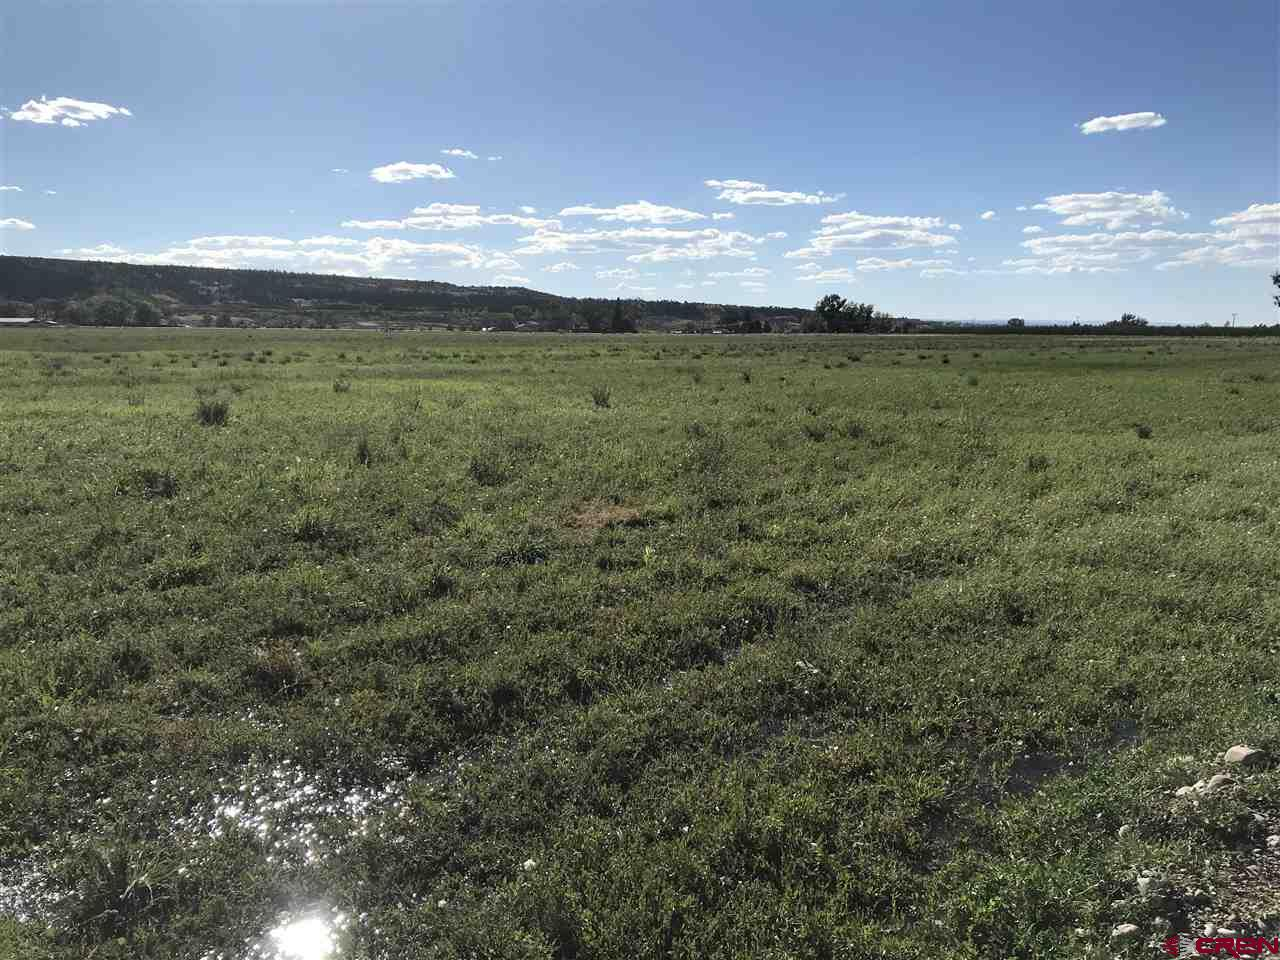 TBD (Lot 2) Trout Road, Montrose, Colorado 81403, ,Lots And Land,For Sale,TBD (Lot 2) Trout Road,779115